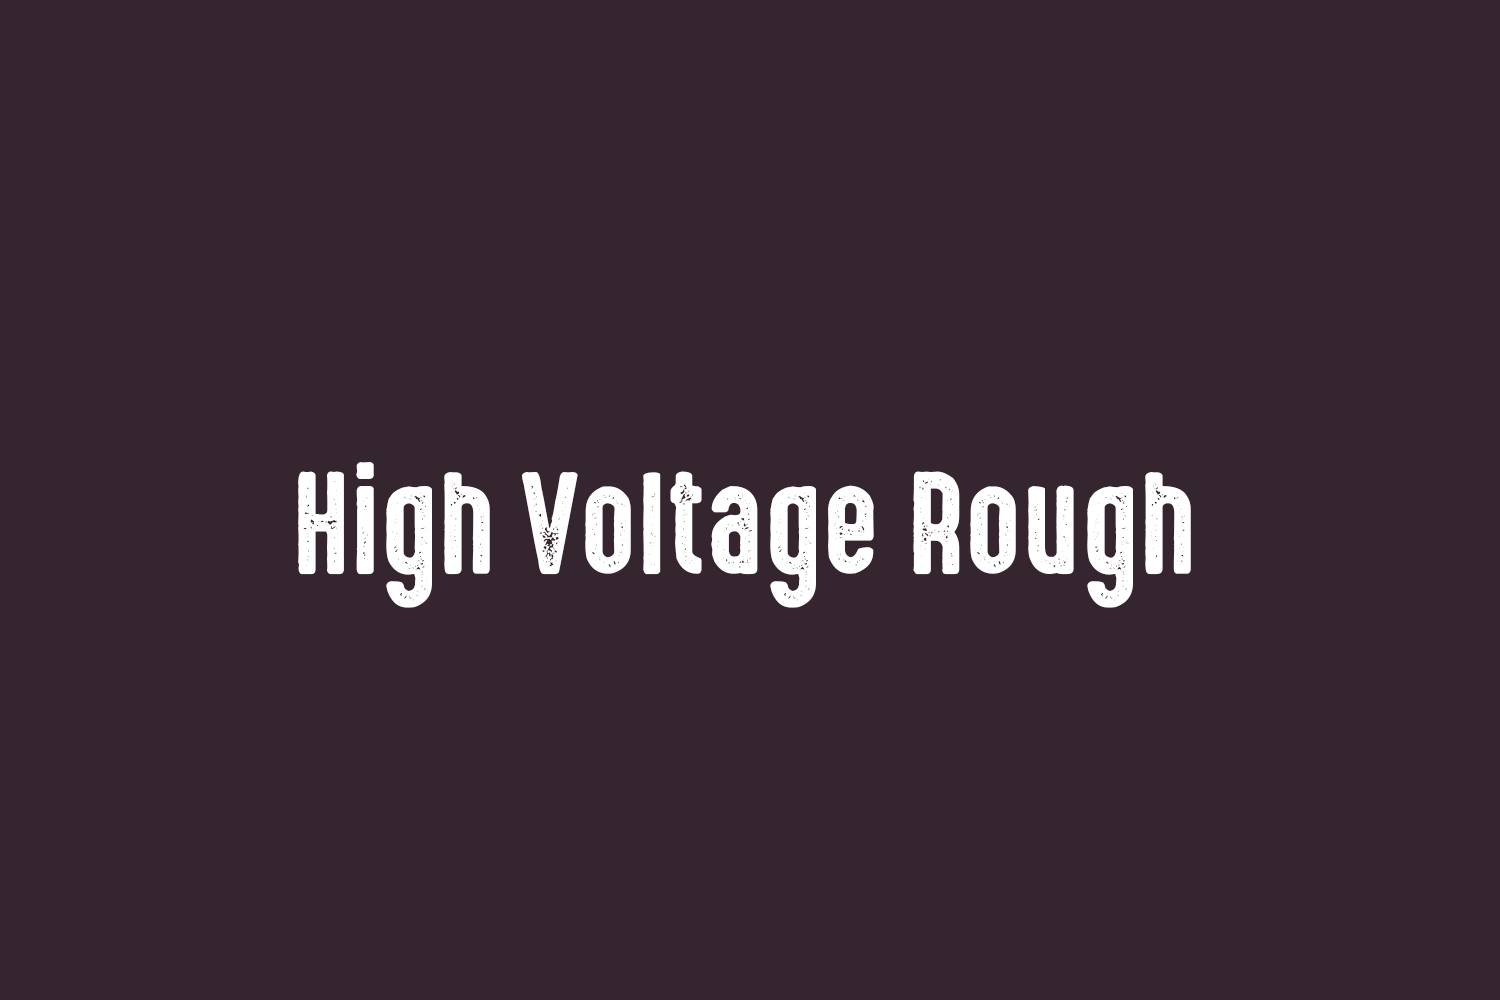 High Voltage Rough Free Font